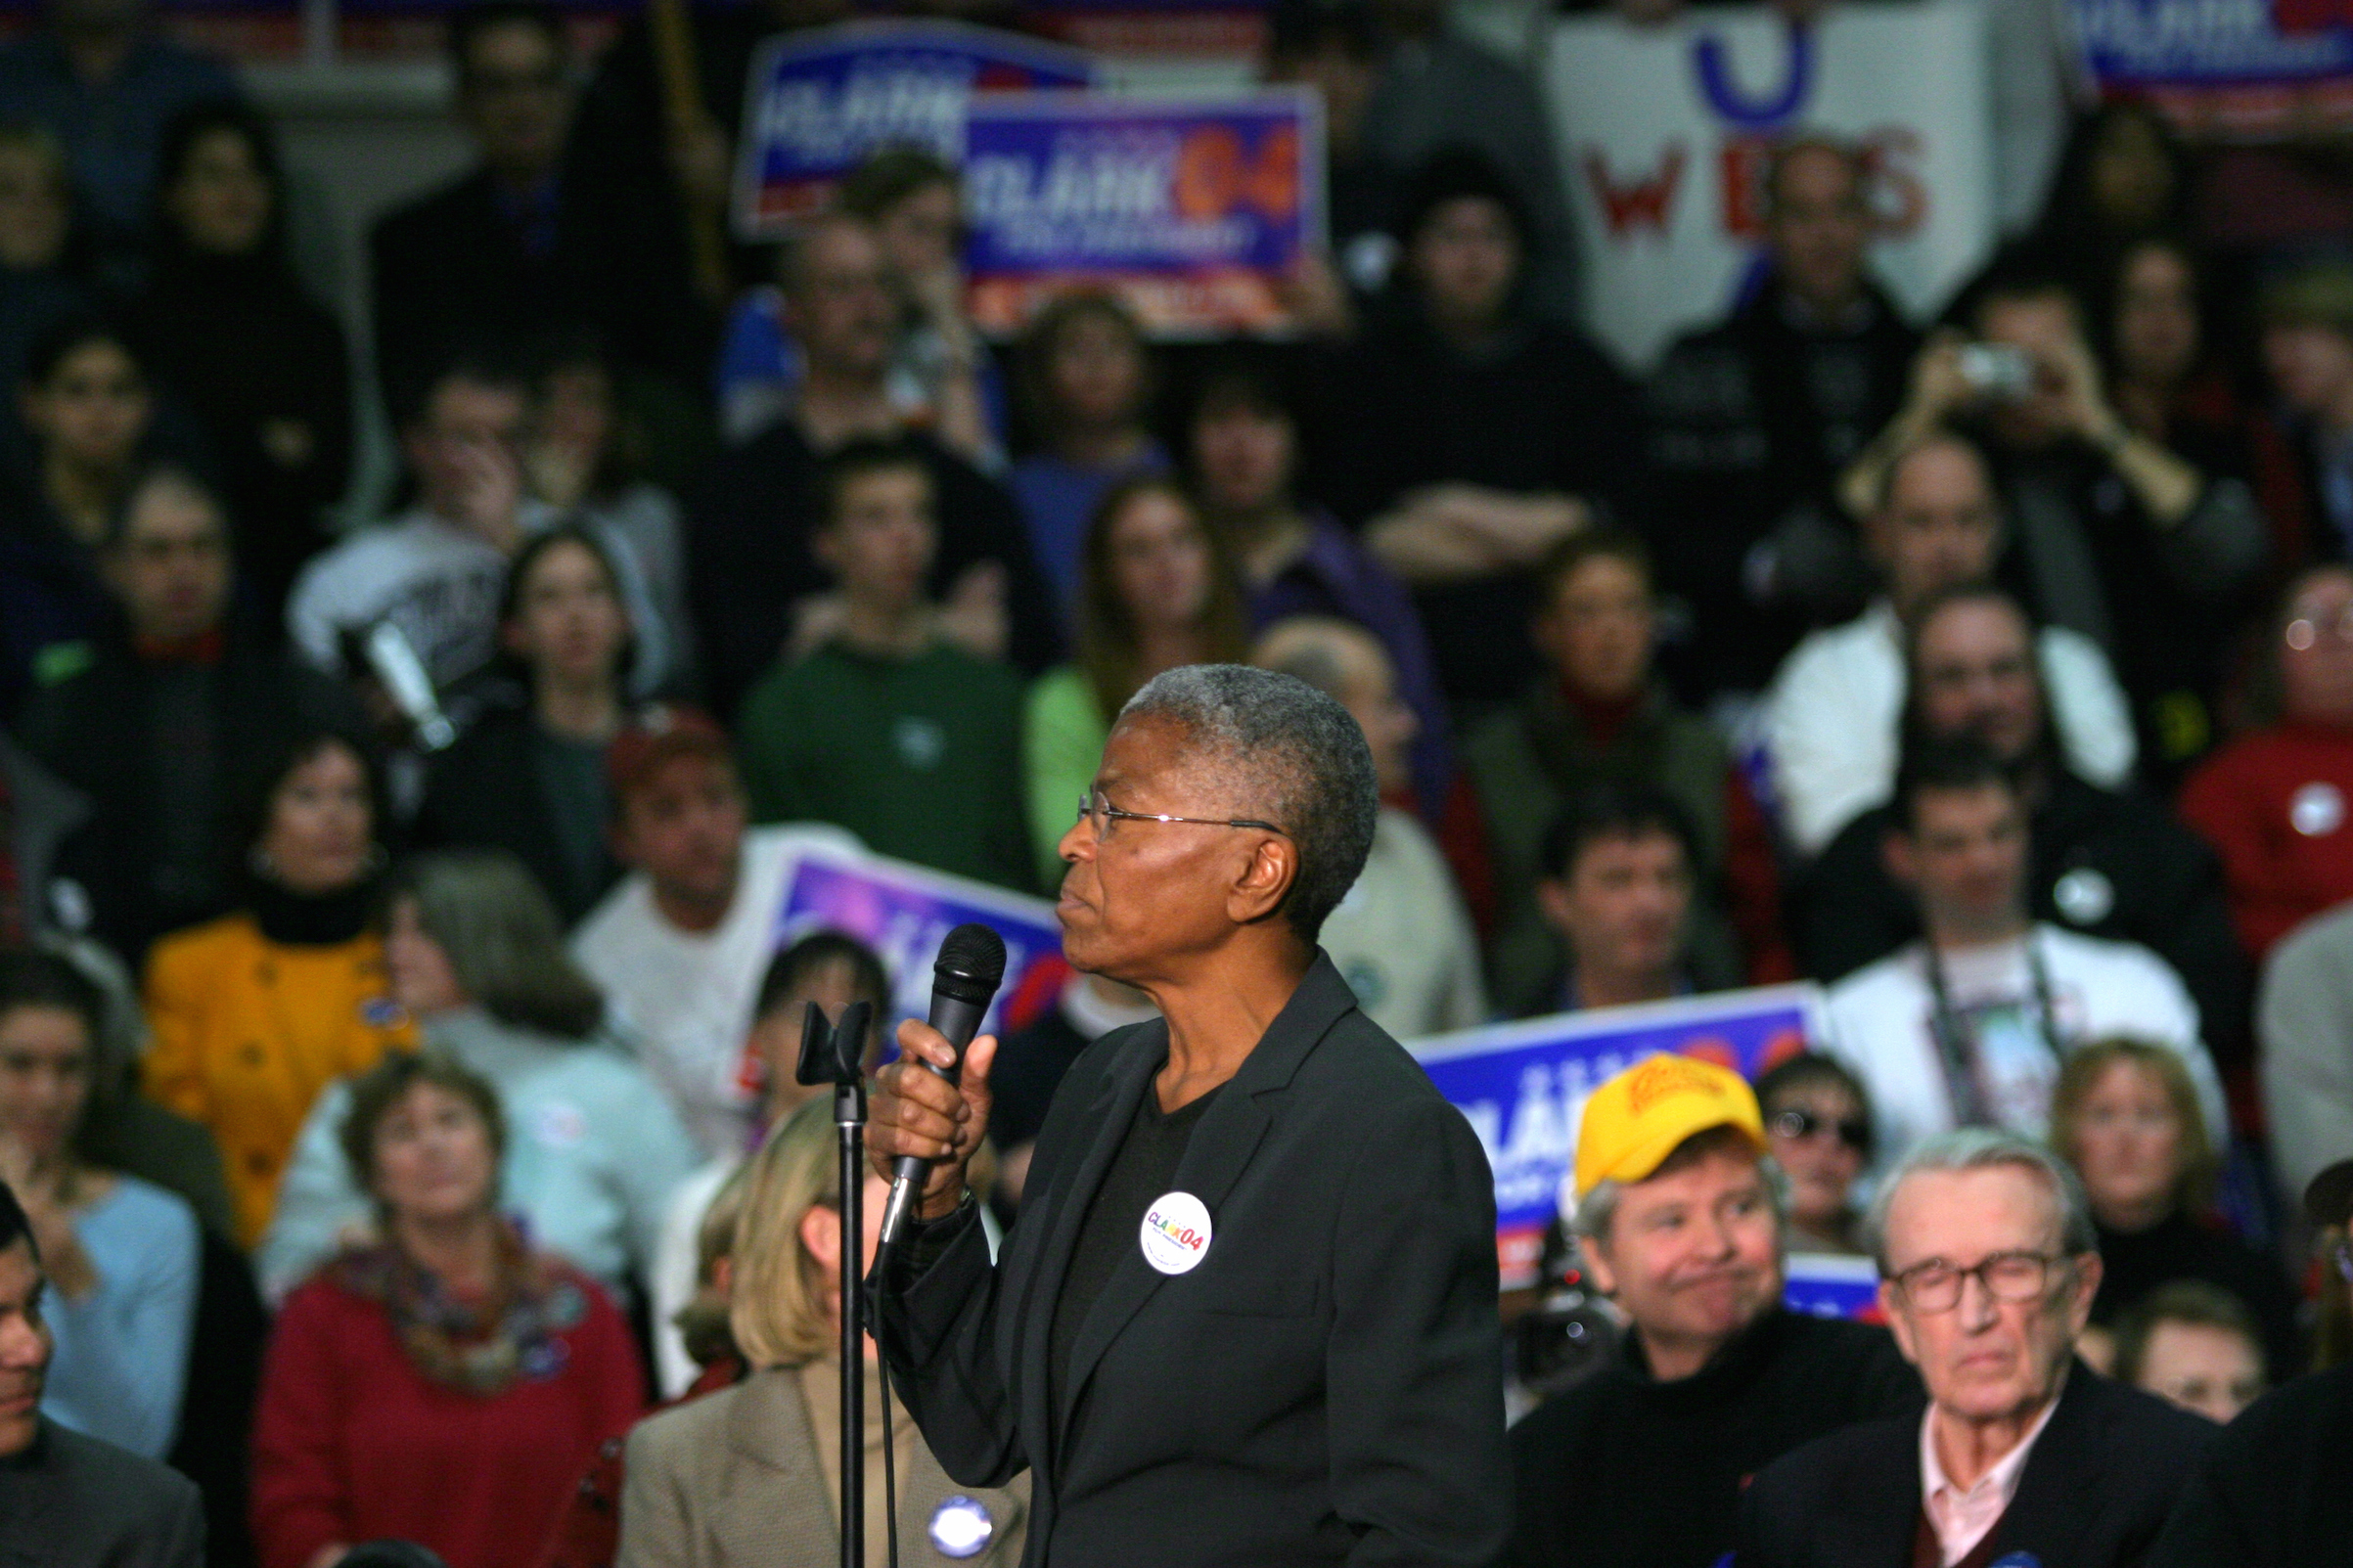 Mary Frances Berry, as Chairperson of the U.S. Commission on Civil Rights, addresses a supporters at a Democratic presidential rally in 2004.